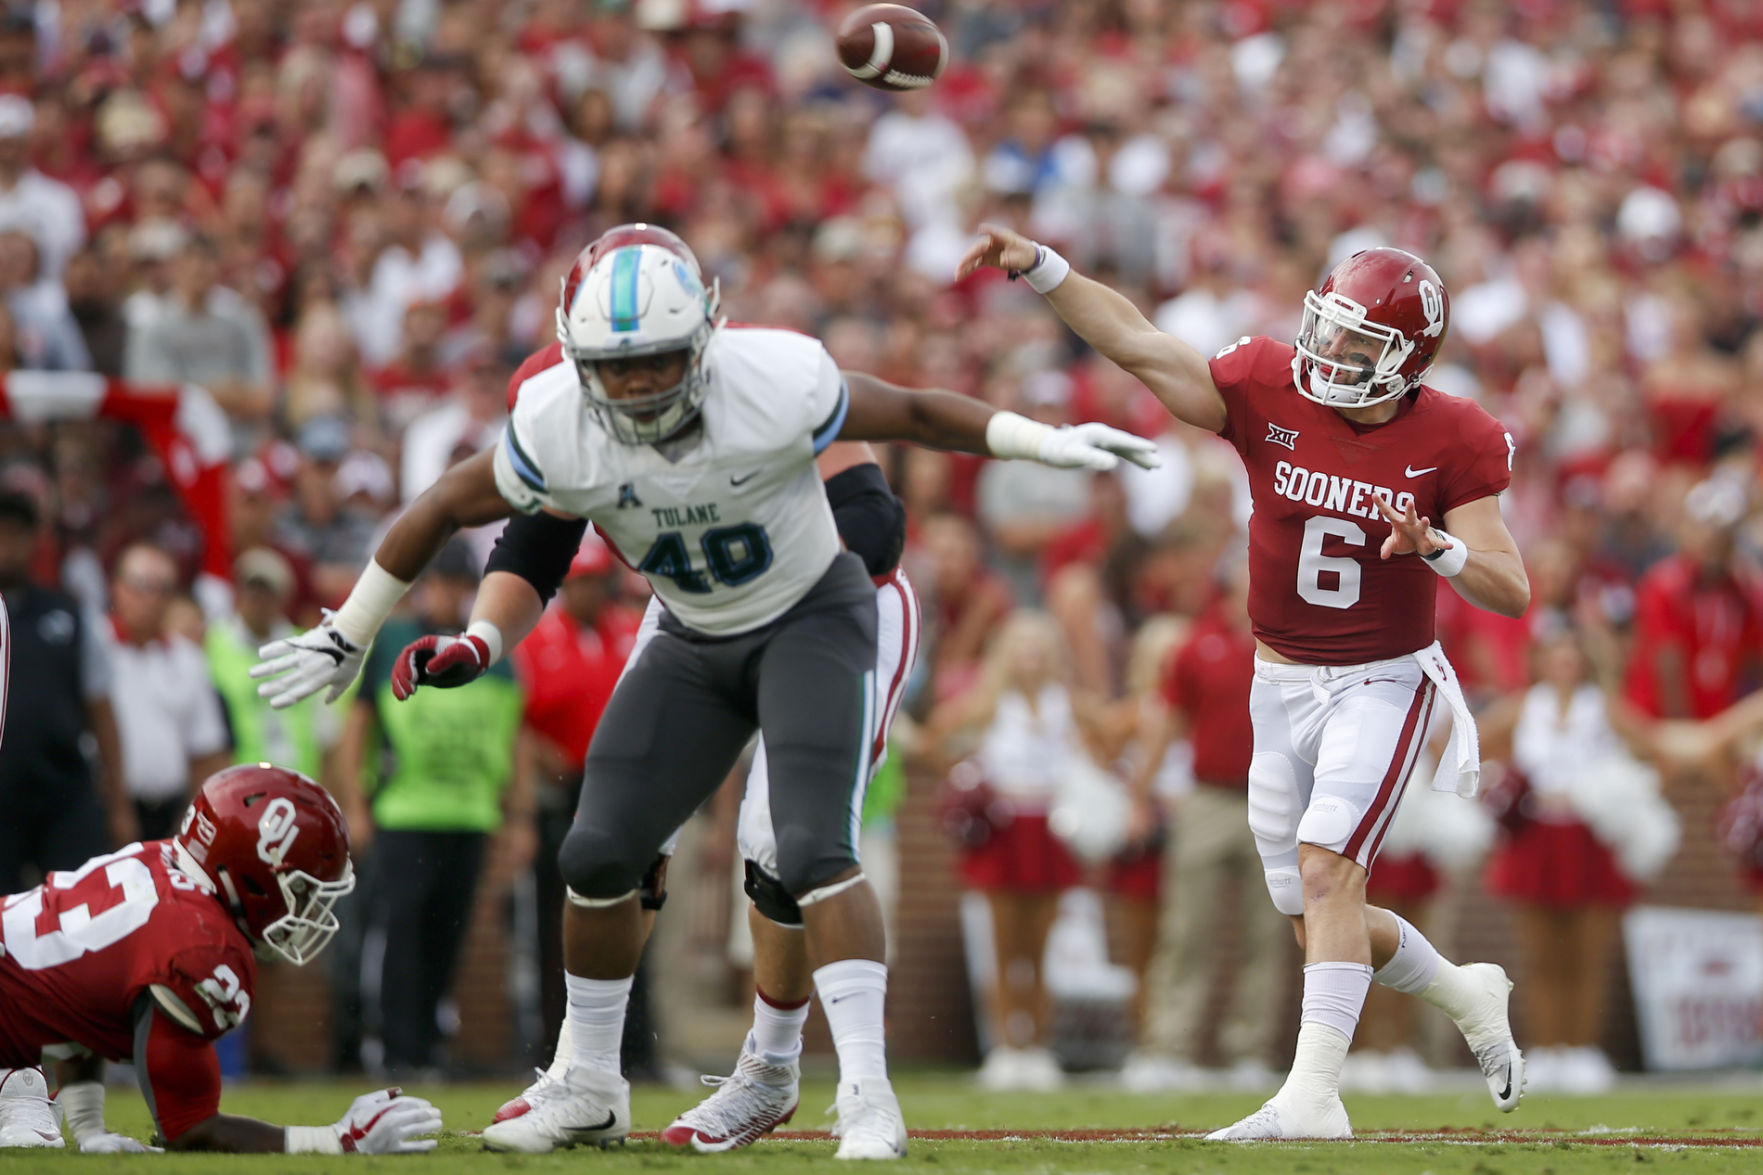 Mayfield throws 4 TDs as No. 2 Oklahoma tops Tulane 56-14